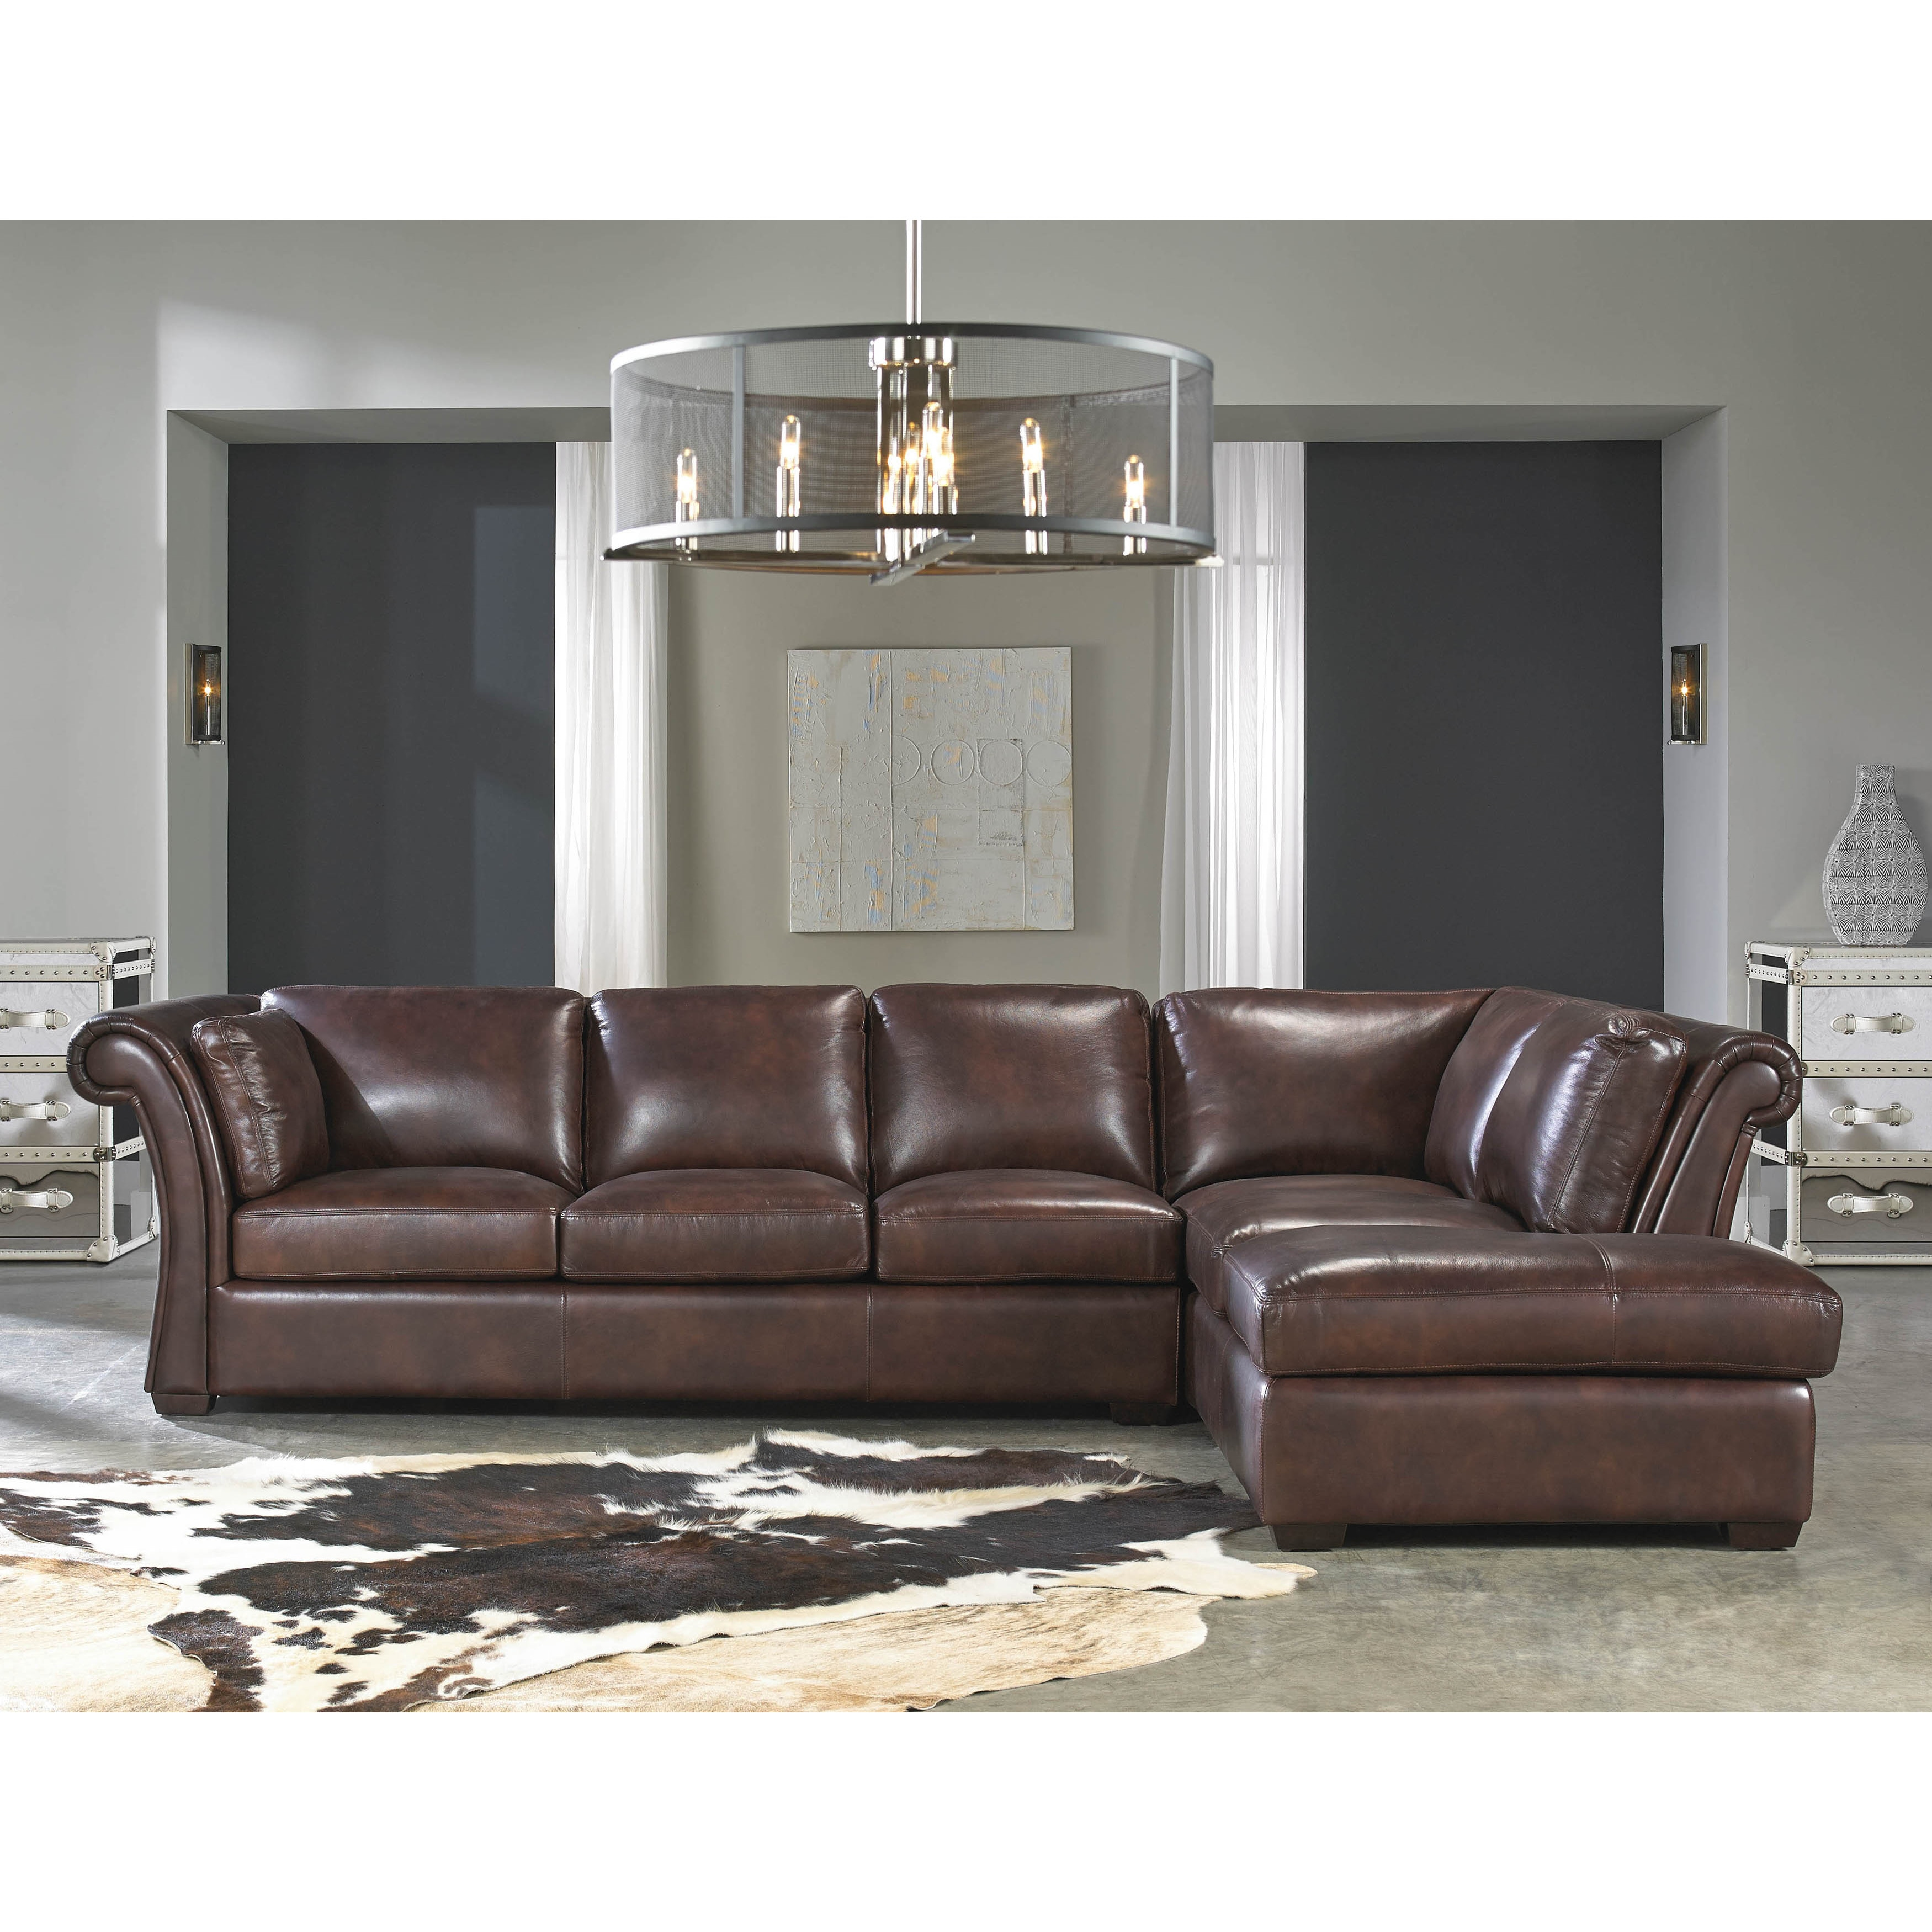 Lazzaro Leather Angelina Rustic Sauvage Two Piece Sectional Sofa Free Shipping Today 11142933